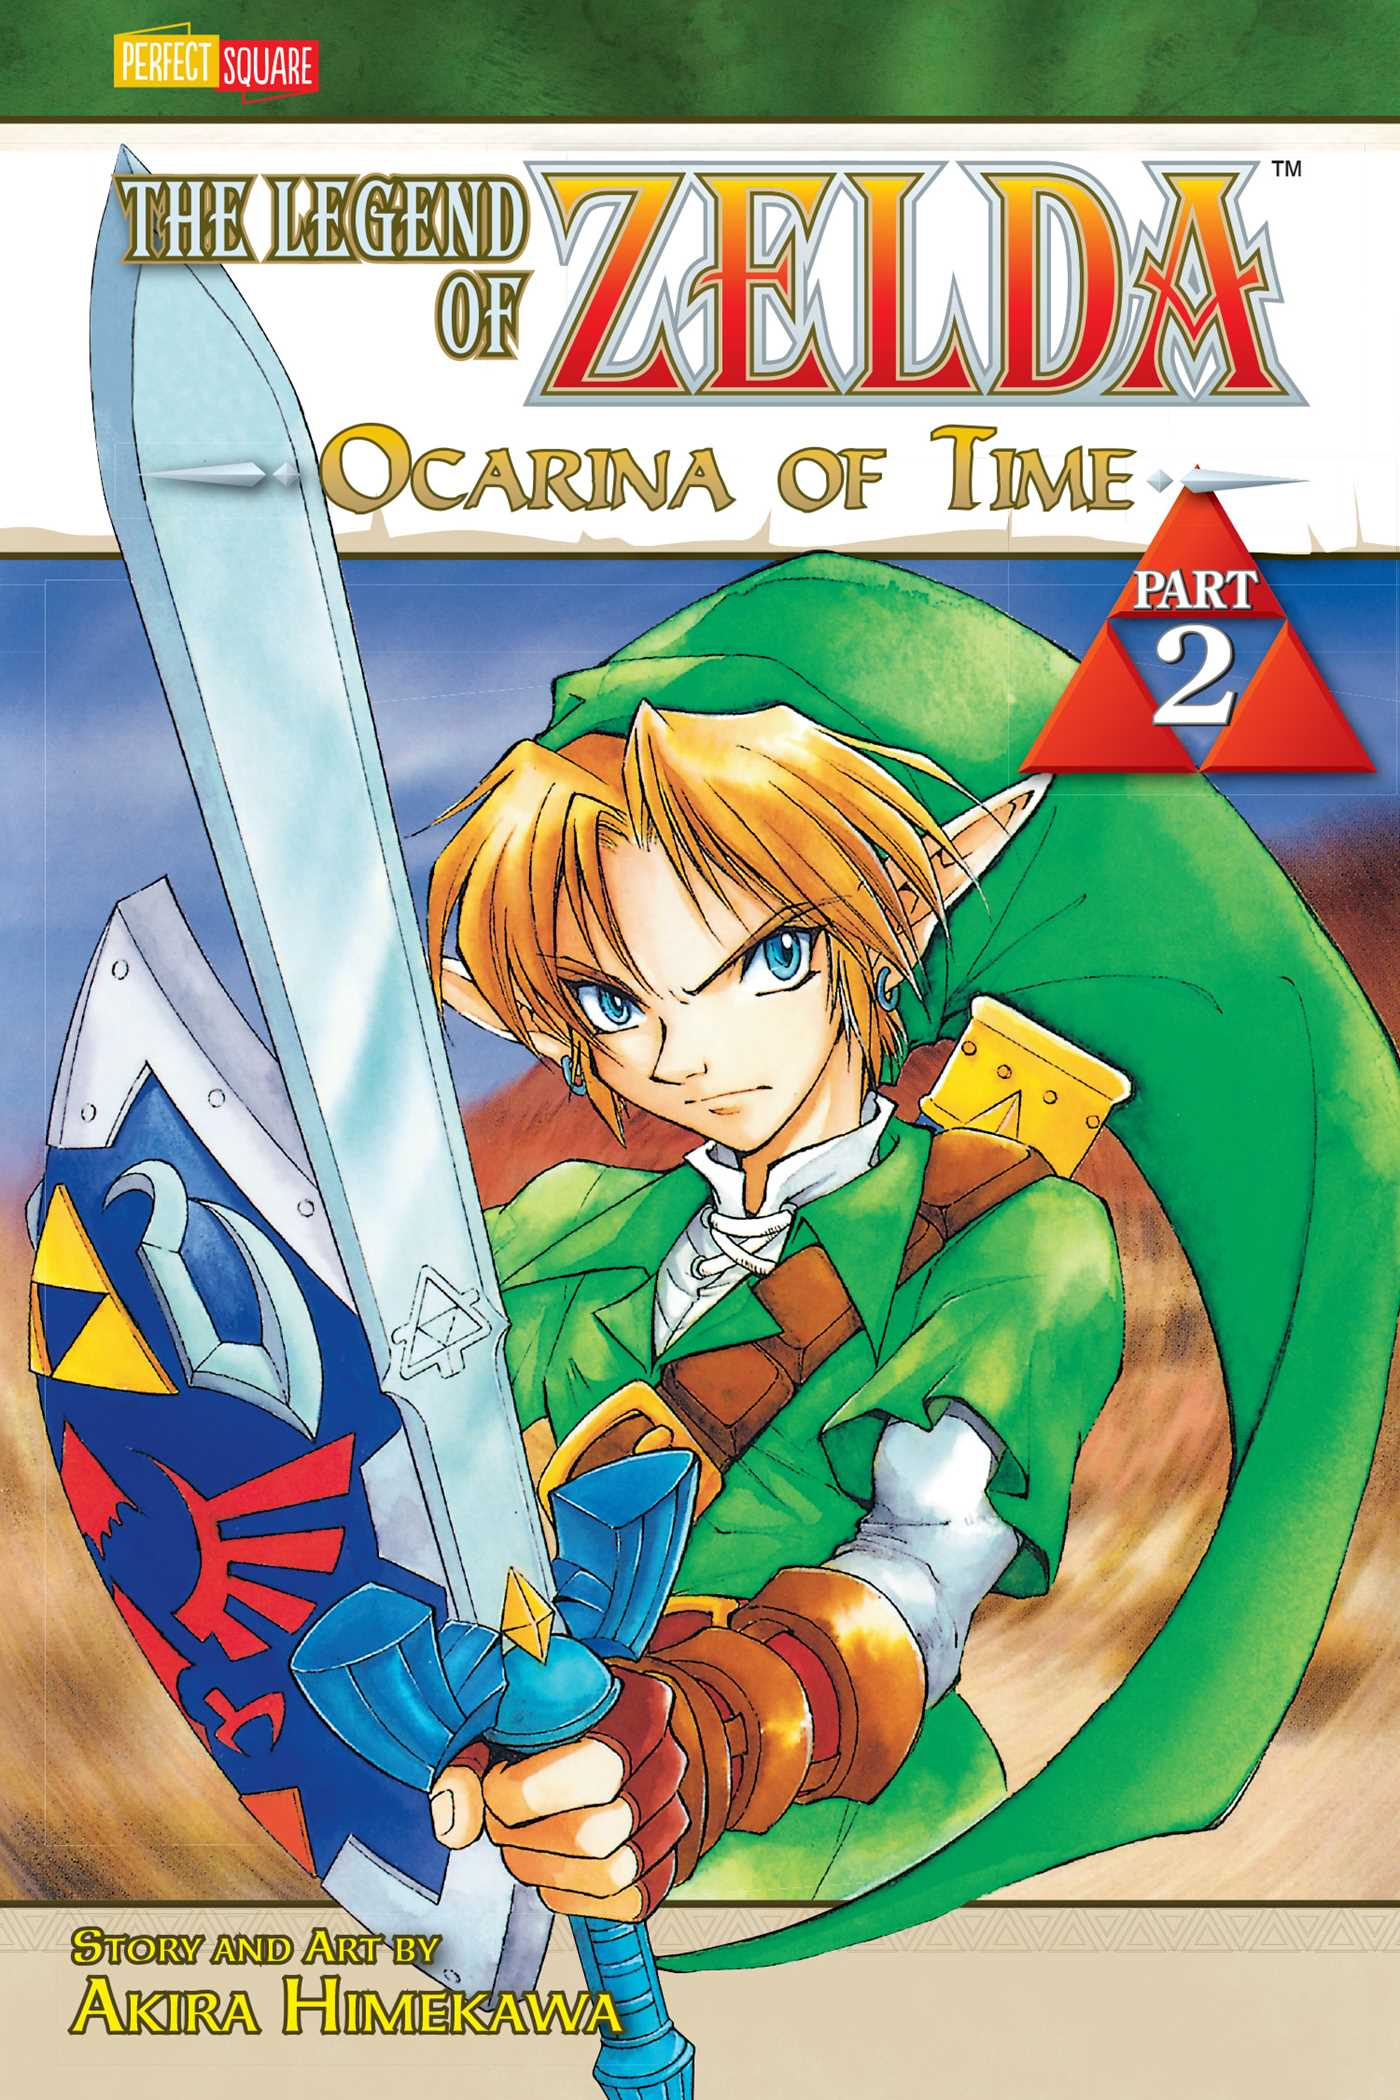 The legend of zelda vol 2 9781421523286 hr